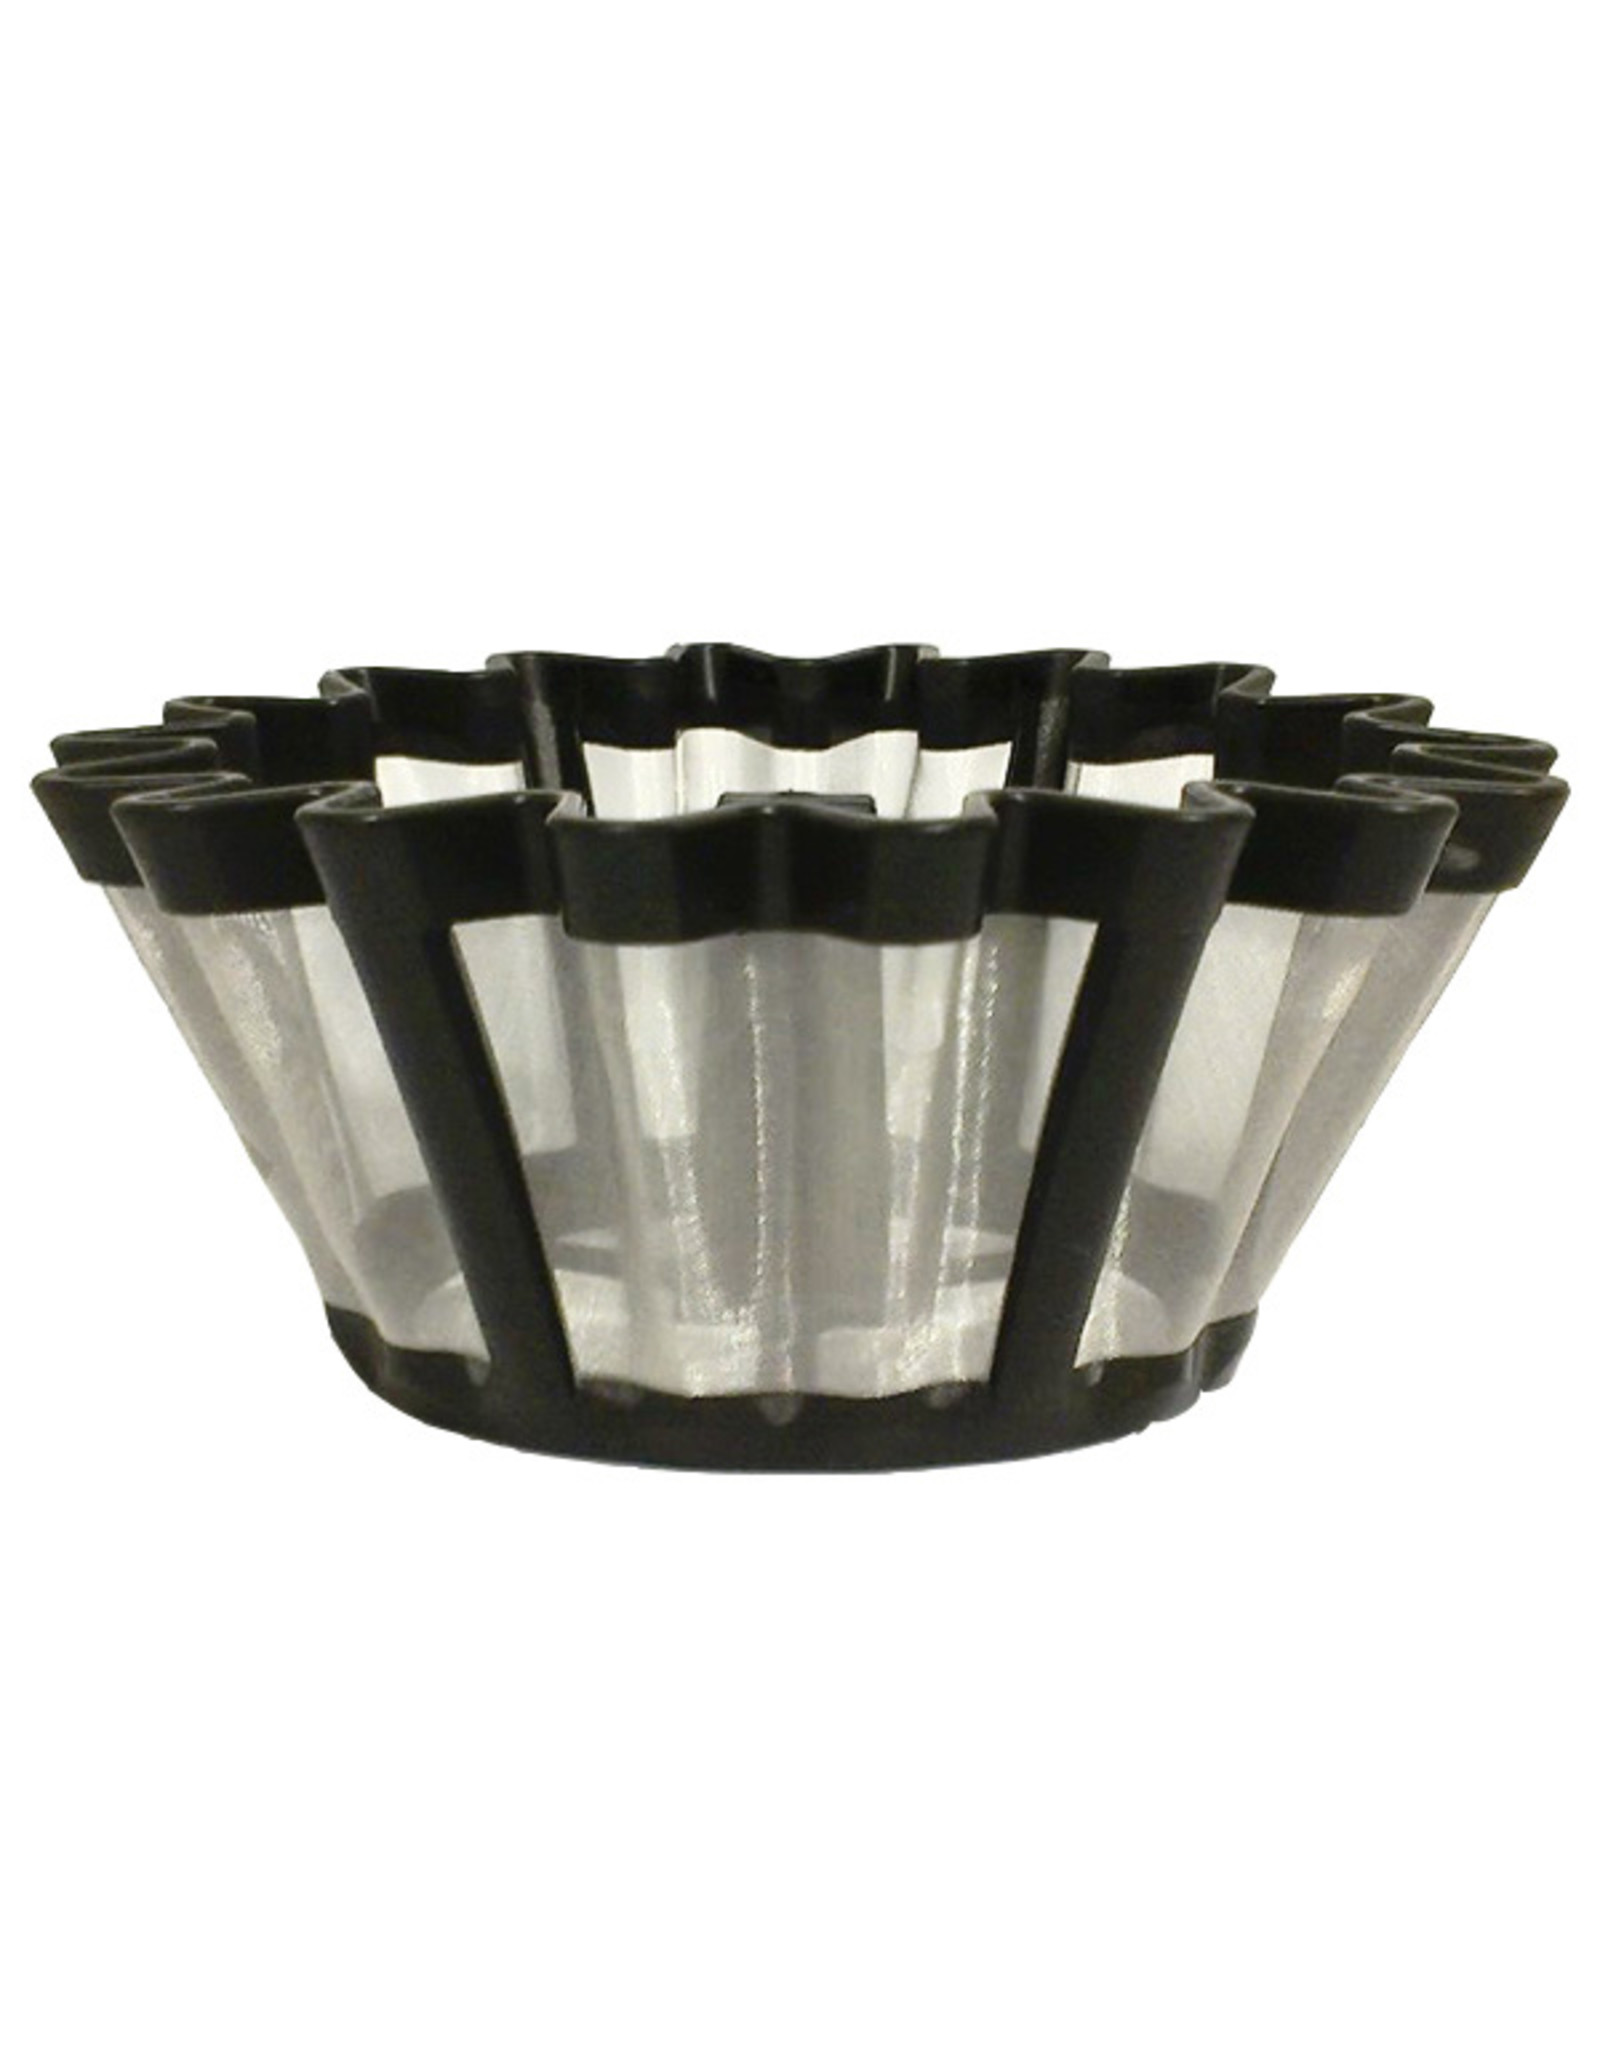 REUSABLE OVAL COFEE FILTER (6 to 12 cups)